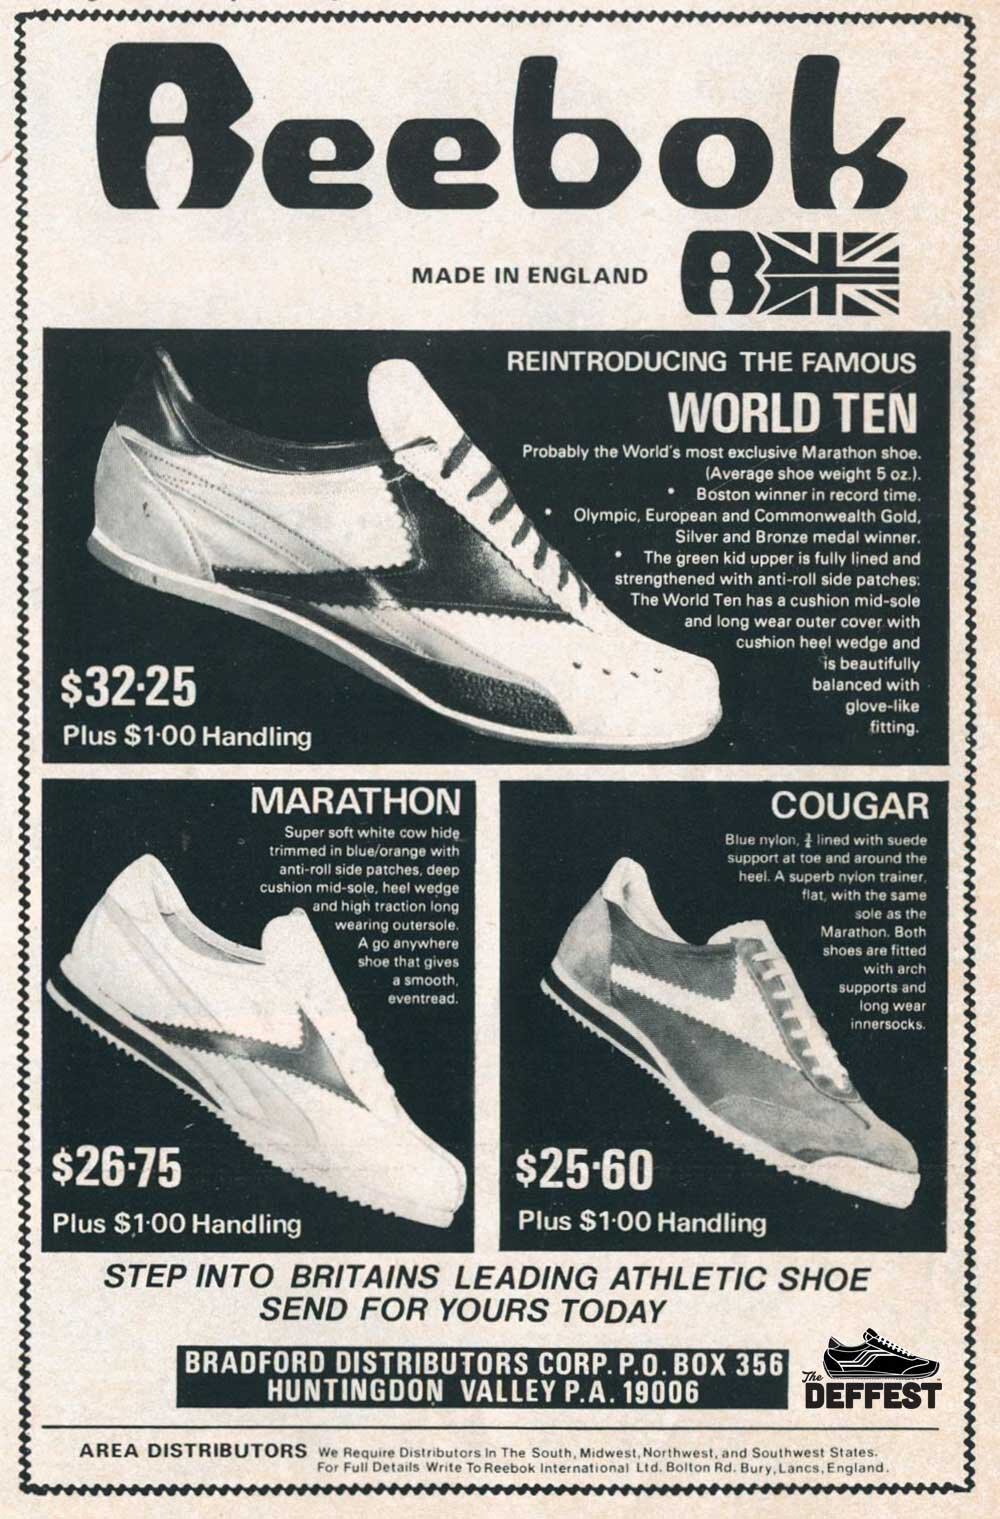 70s Running Shoes The Deffest A Vintage And Retro Sneaker Blog Vintage Ads